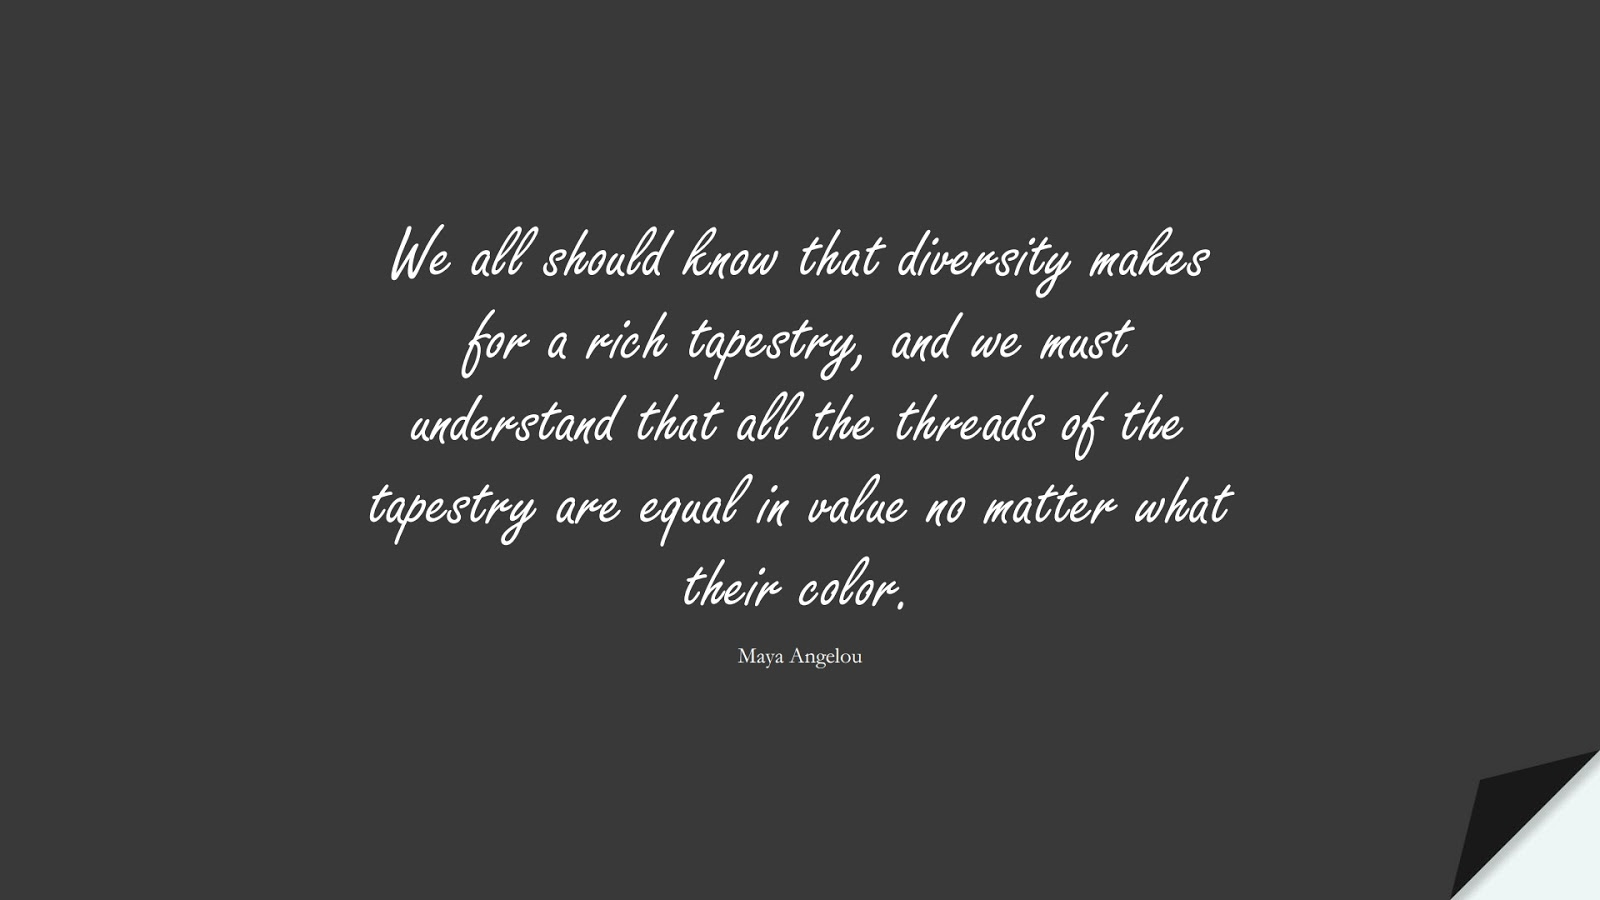 We all should know that diversity makes for a rich tapestry, and we must understand that all the threads of the tapestry are equal in value no matter what their color. (Maya Angelou);  #MayaAngelouQuotes